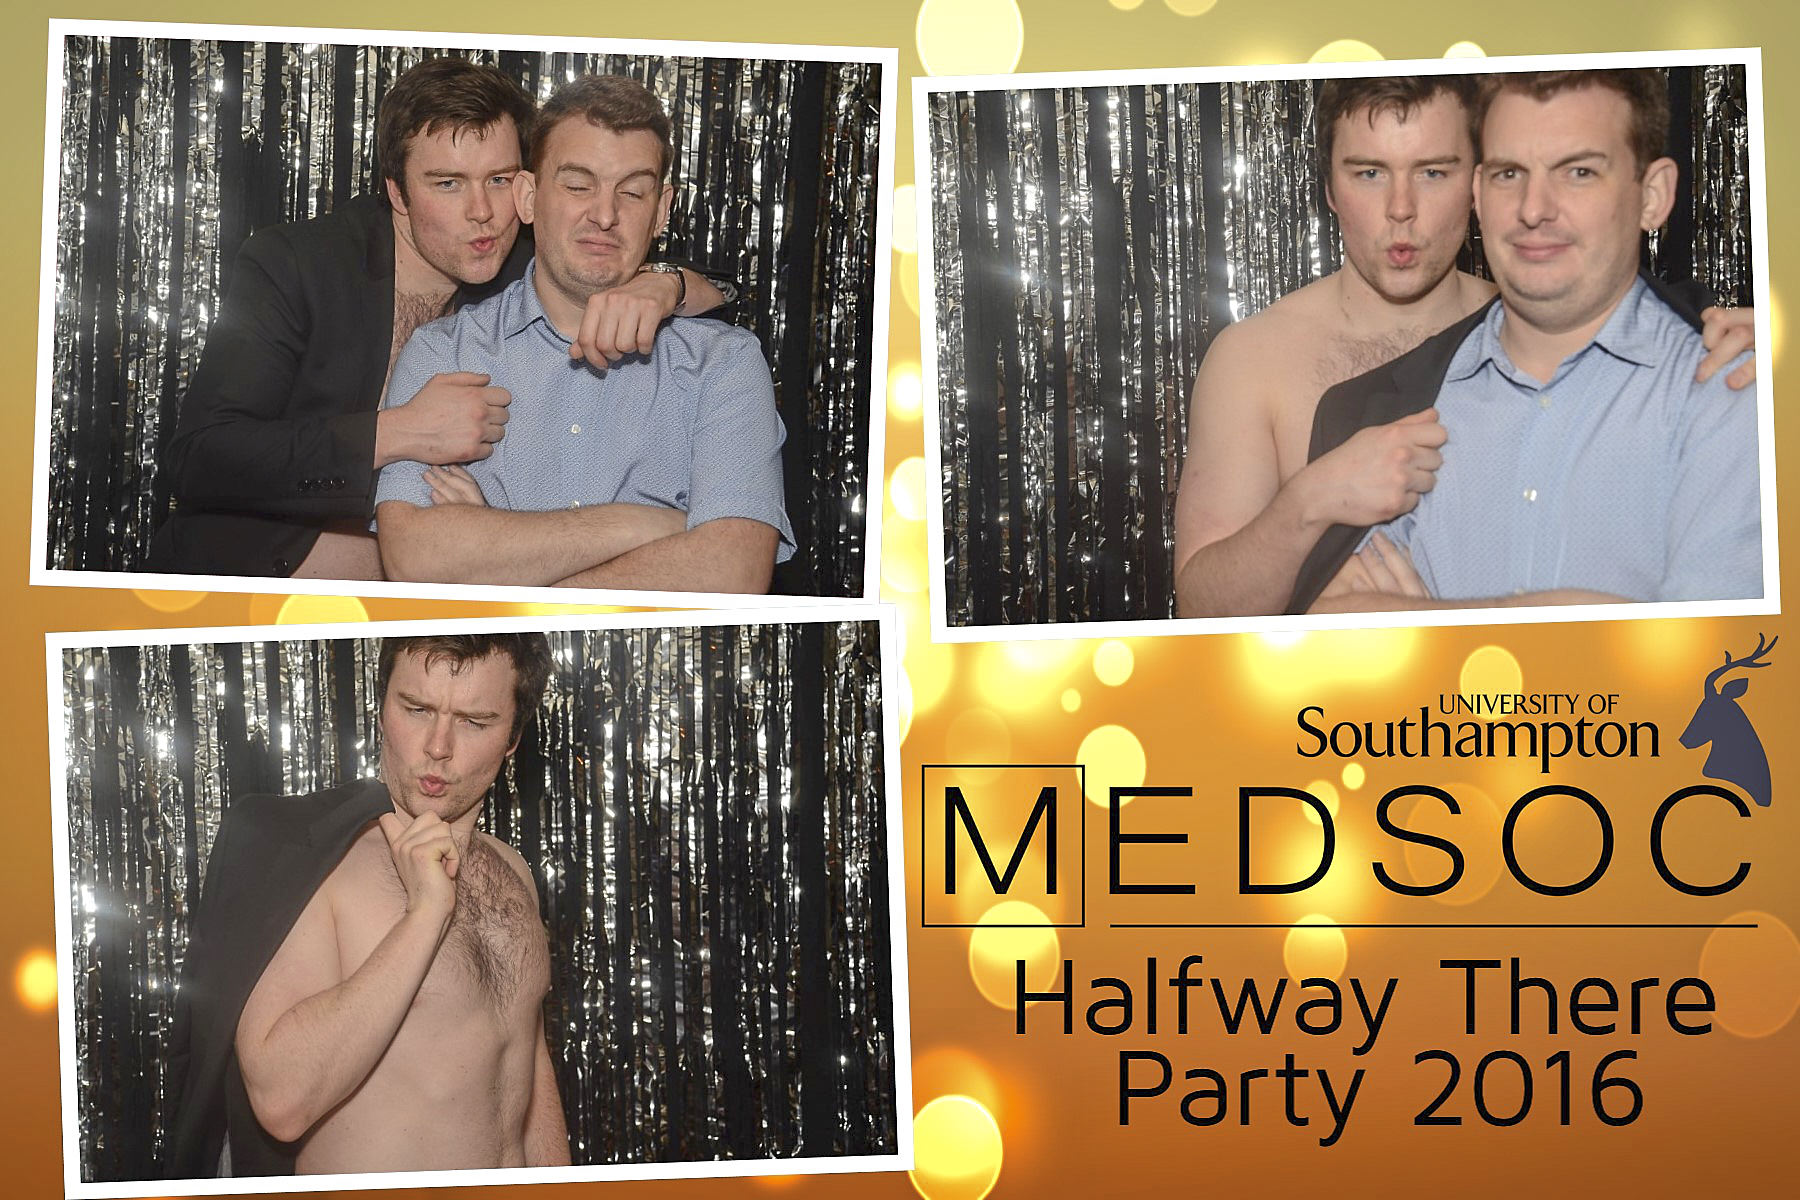 MedSoc Halfway There Party 2016 DS014544.jpg